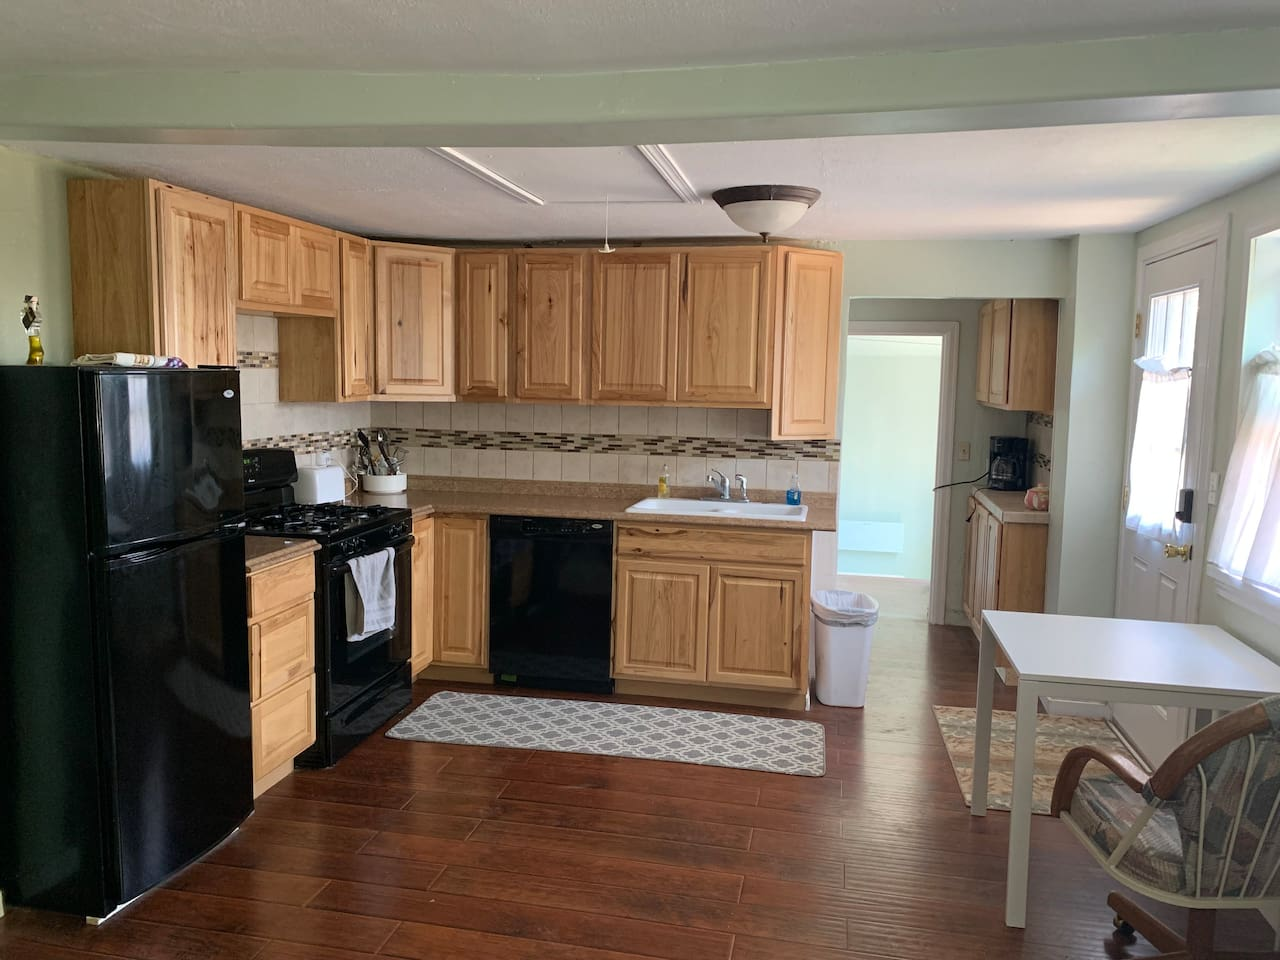 Full Kitchen with dishwasher, gas stove and fridge